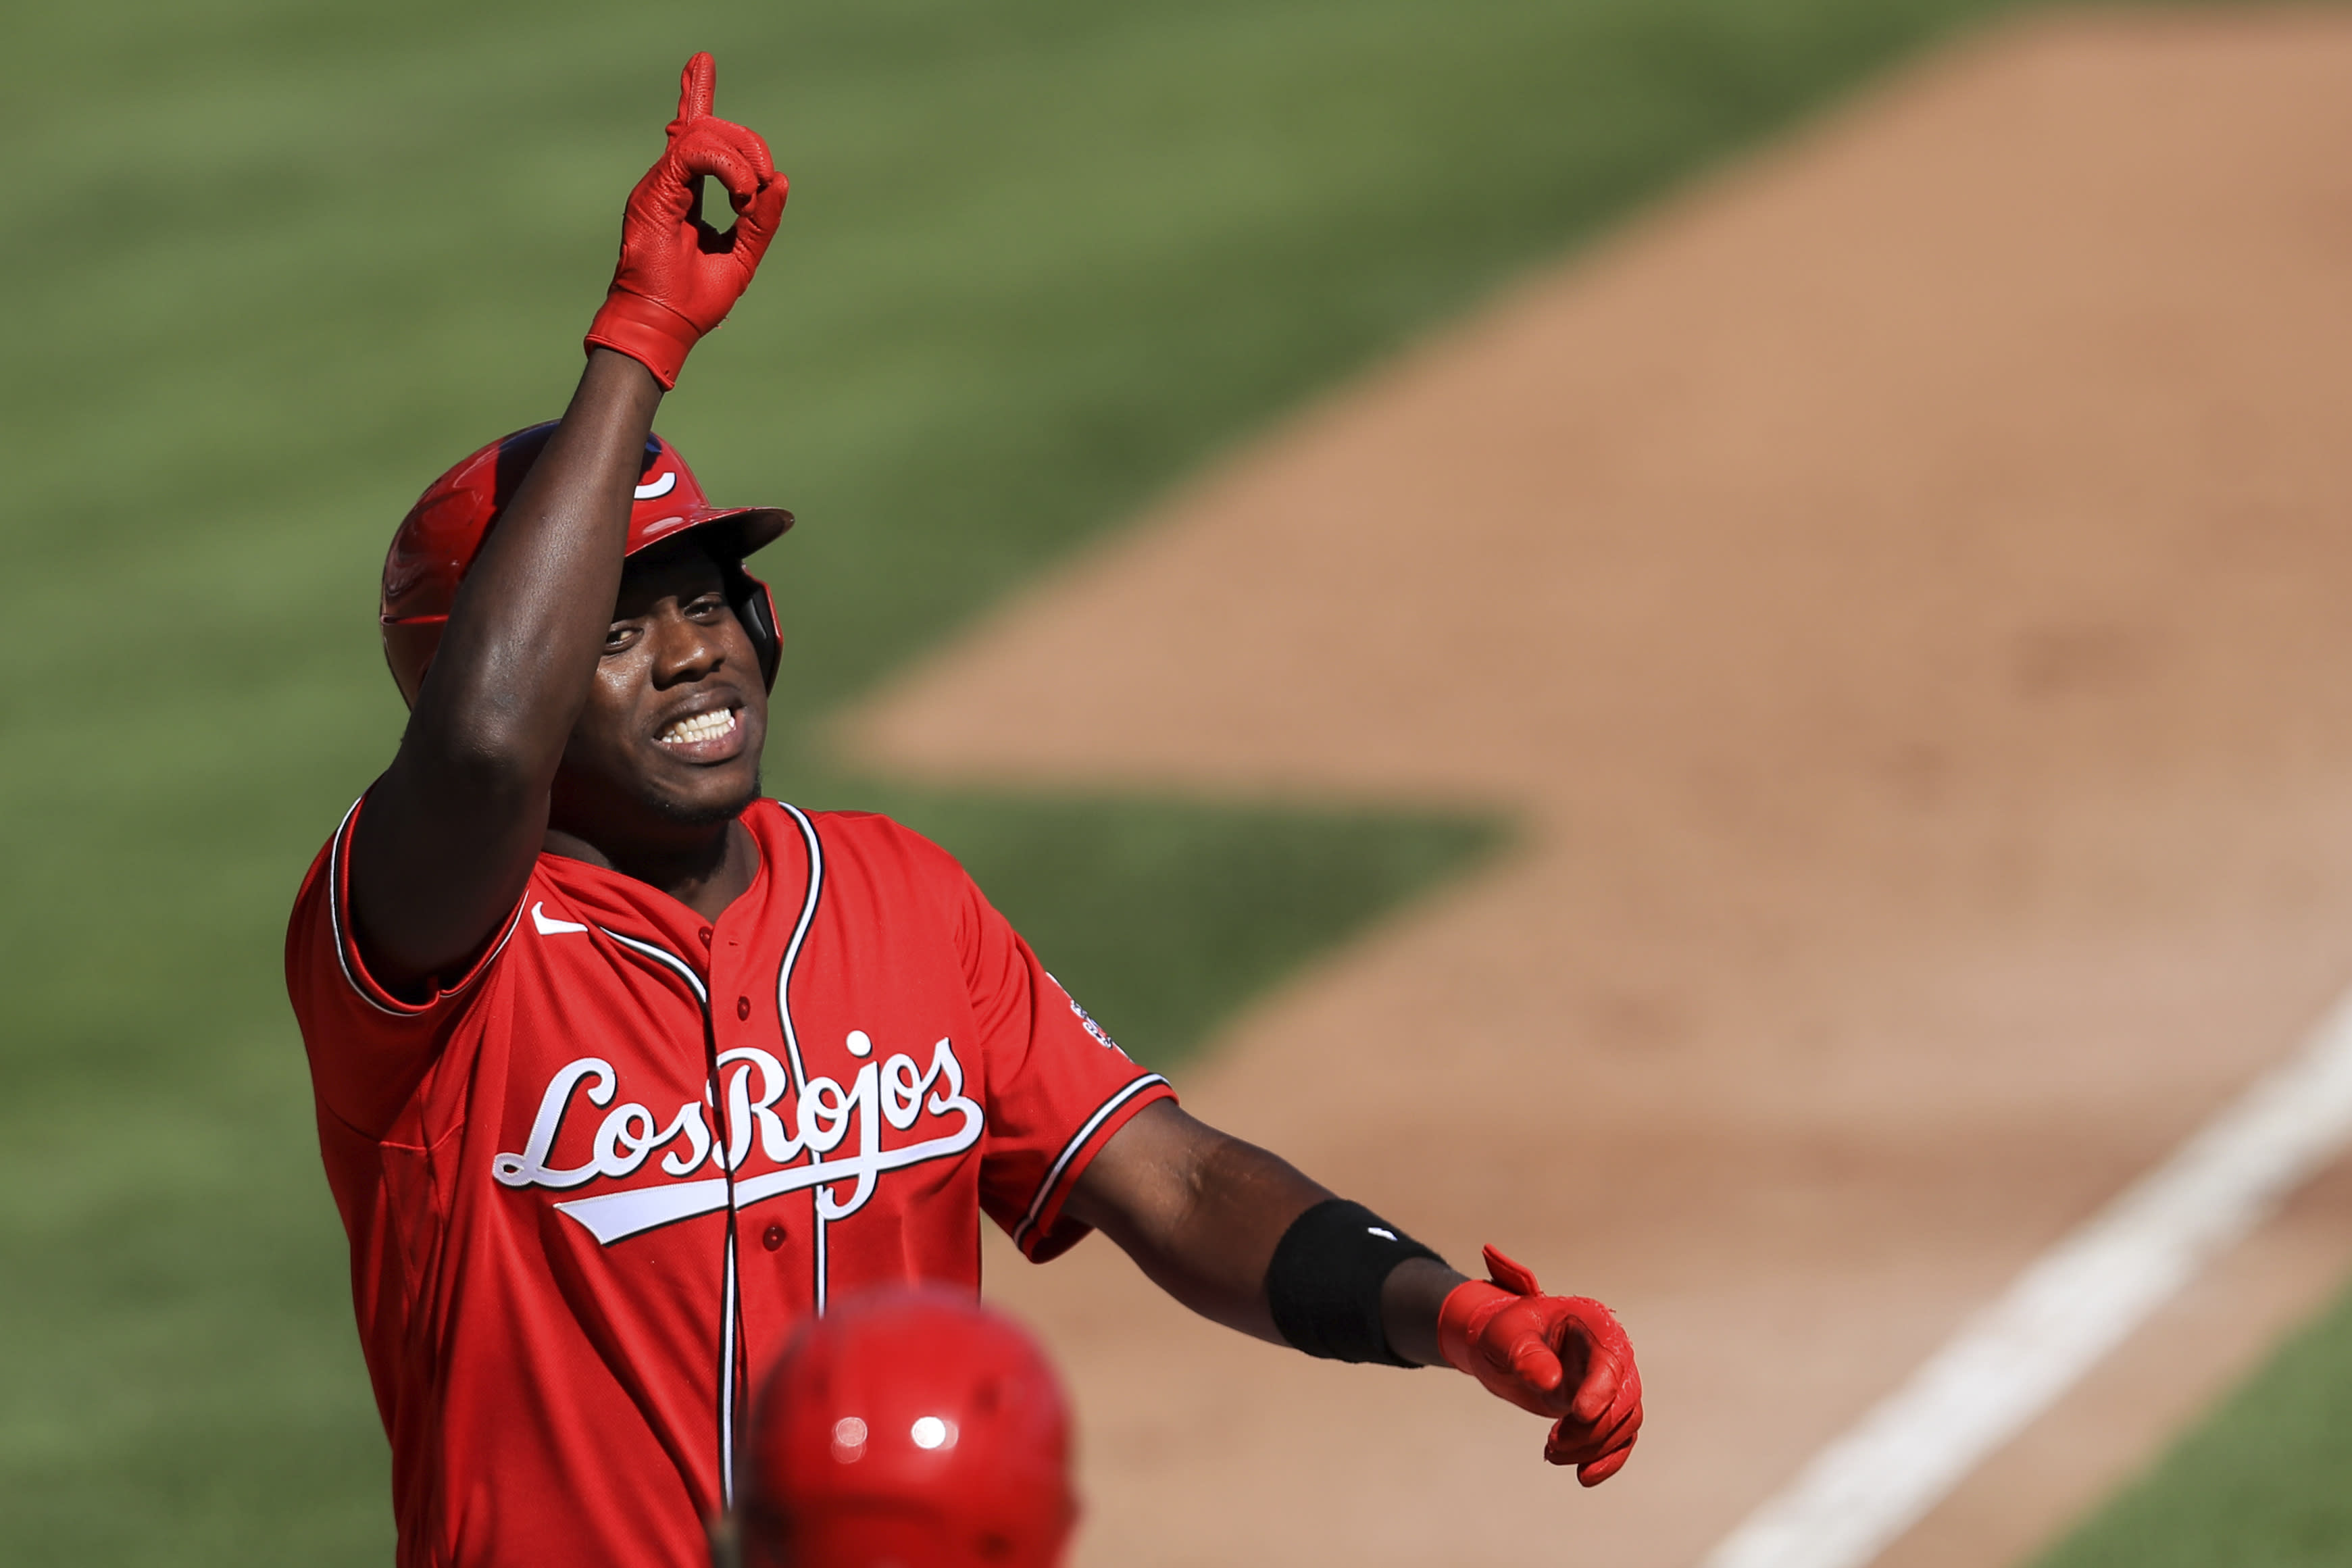 Cincinnati Reds' Aristides Aquino reacts after hitting a two-run home run in the fifth inning during a baseball game against the Chicago White Sox in Cincinnati, Sunday, Sept. 20, 2020. (AP Photo/Aaron Doster)